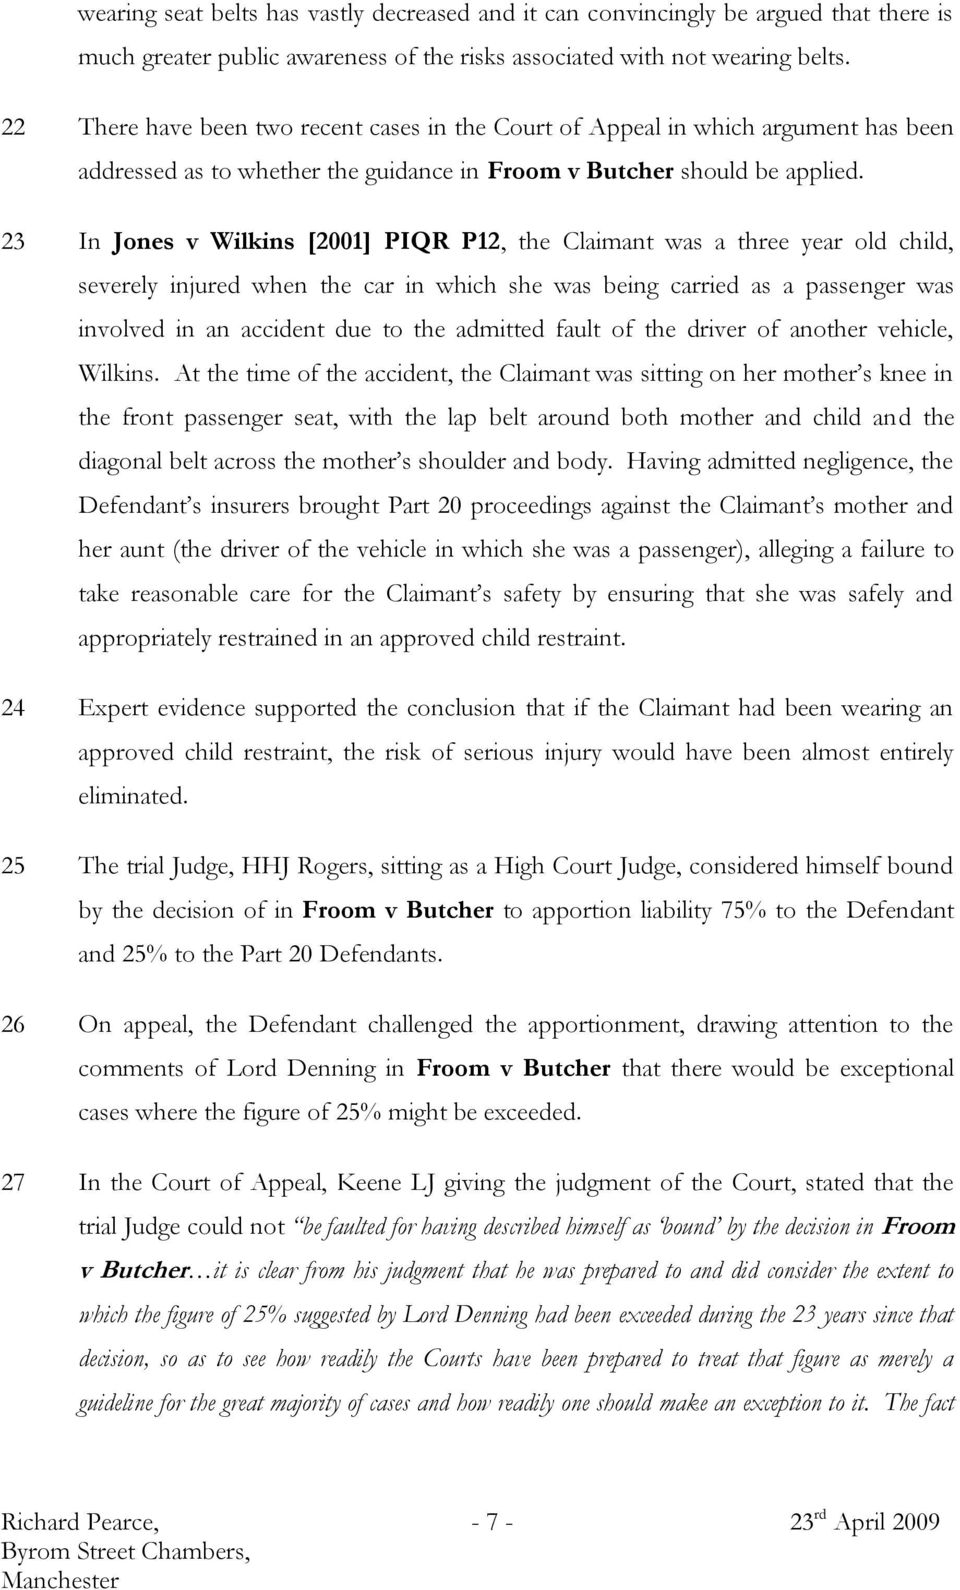 23 In Jones v Wilkins [2001] PIQR P12, the Claimant was a three year old child, severely injured when the car in which she was being carried as a passenger was involved in an accident due to the